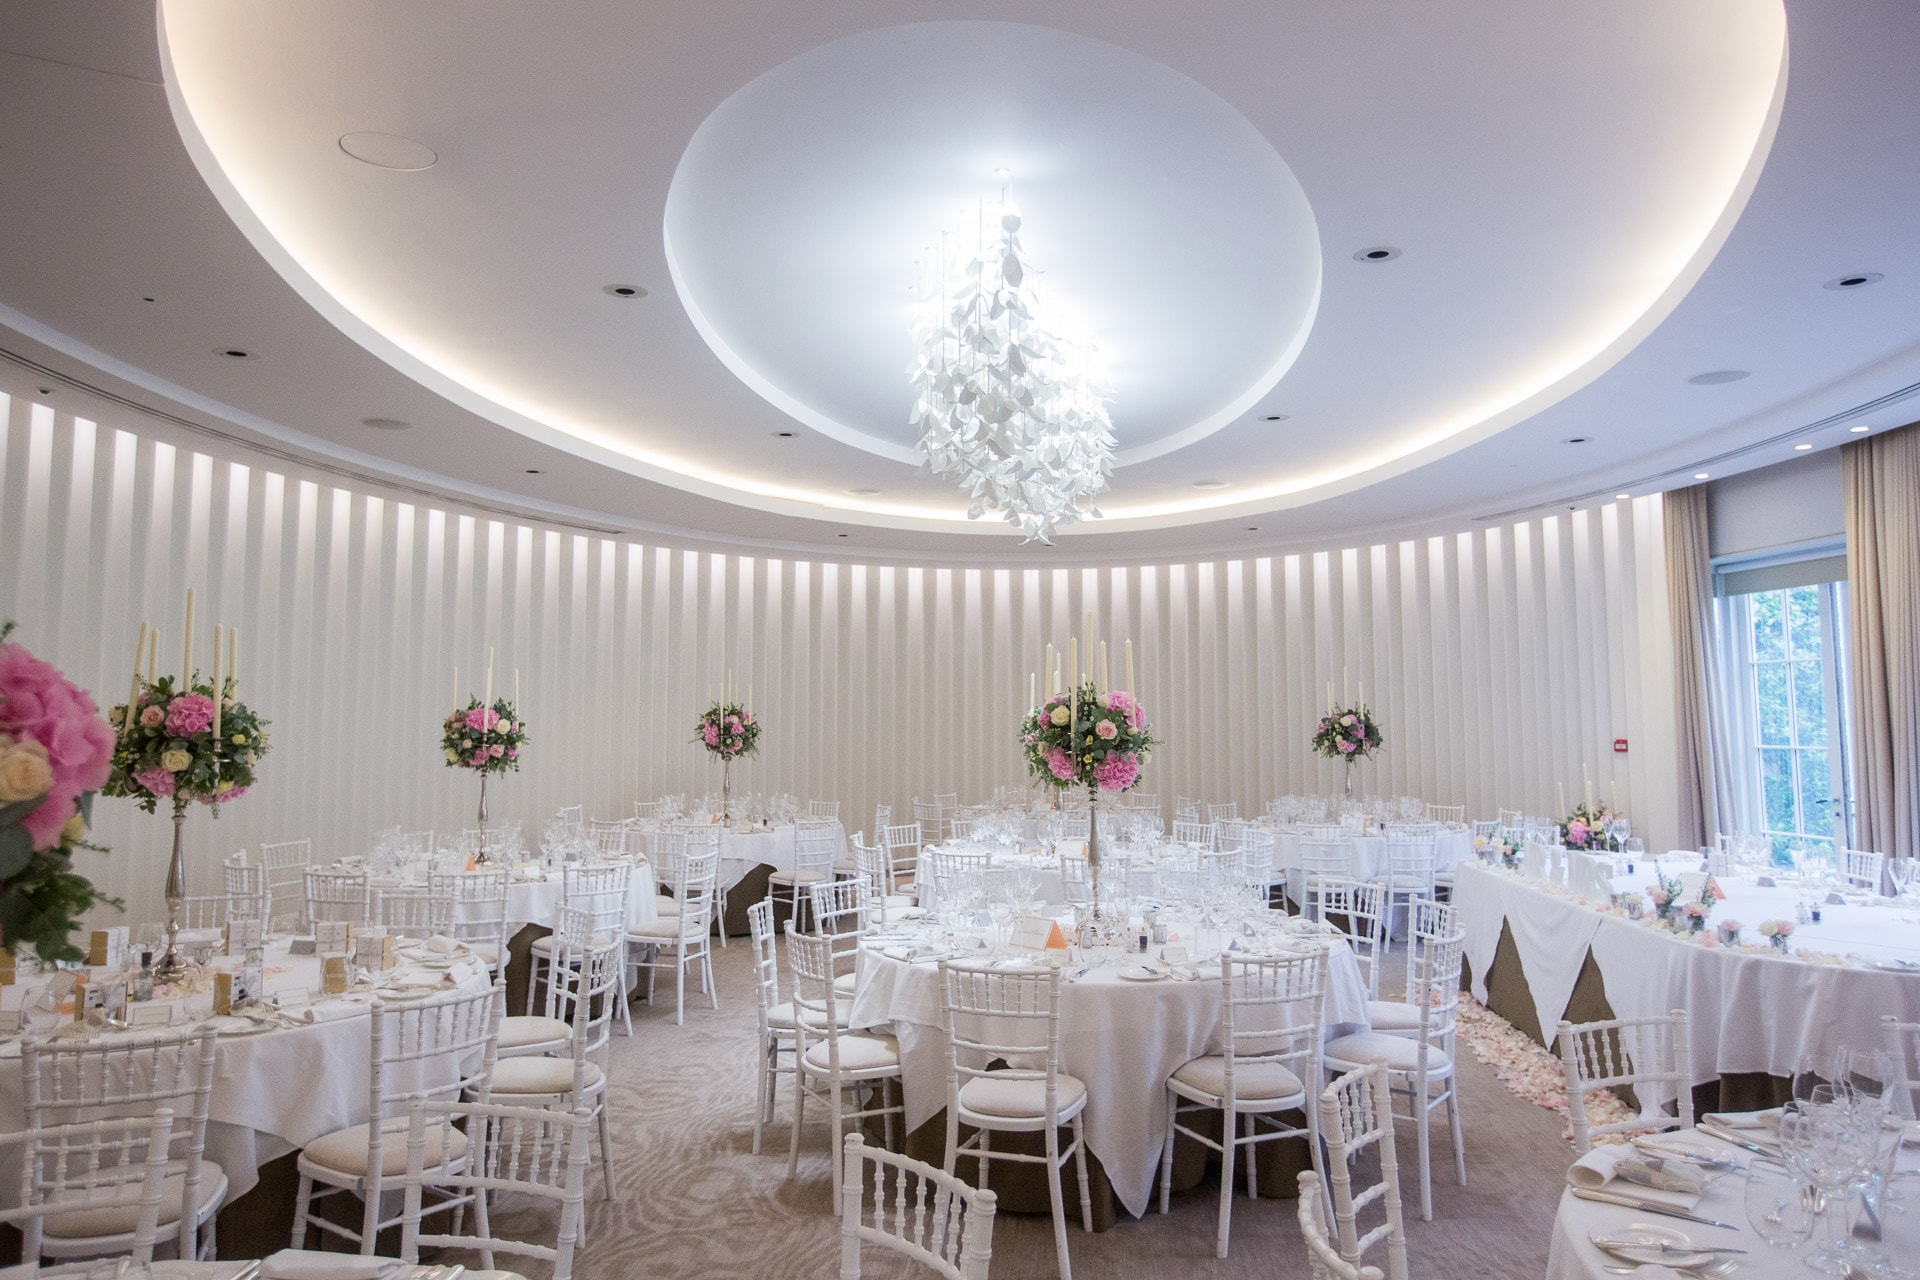 The Oval Room layout at Coworth Park